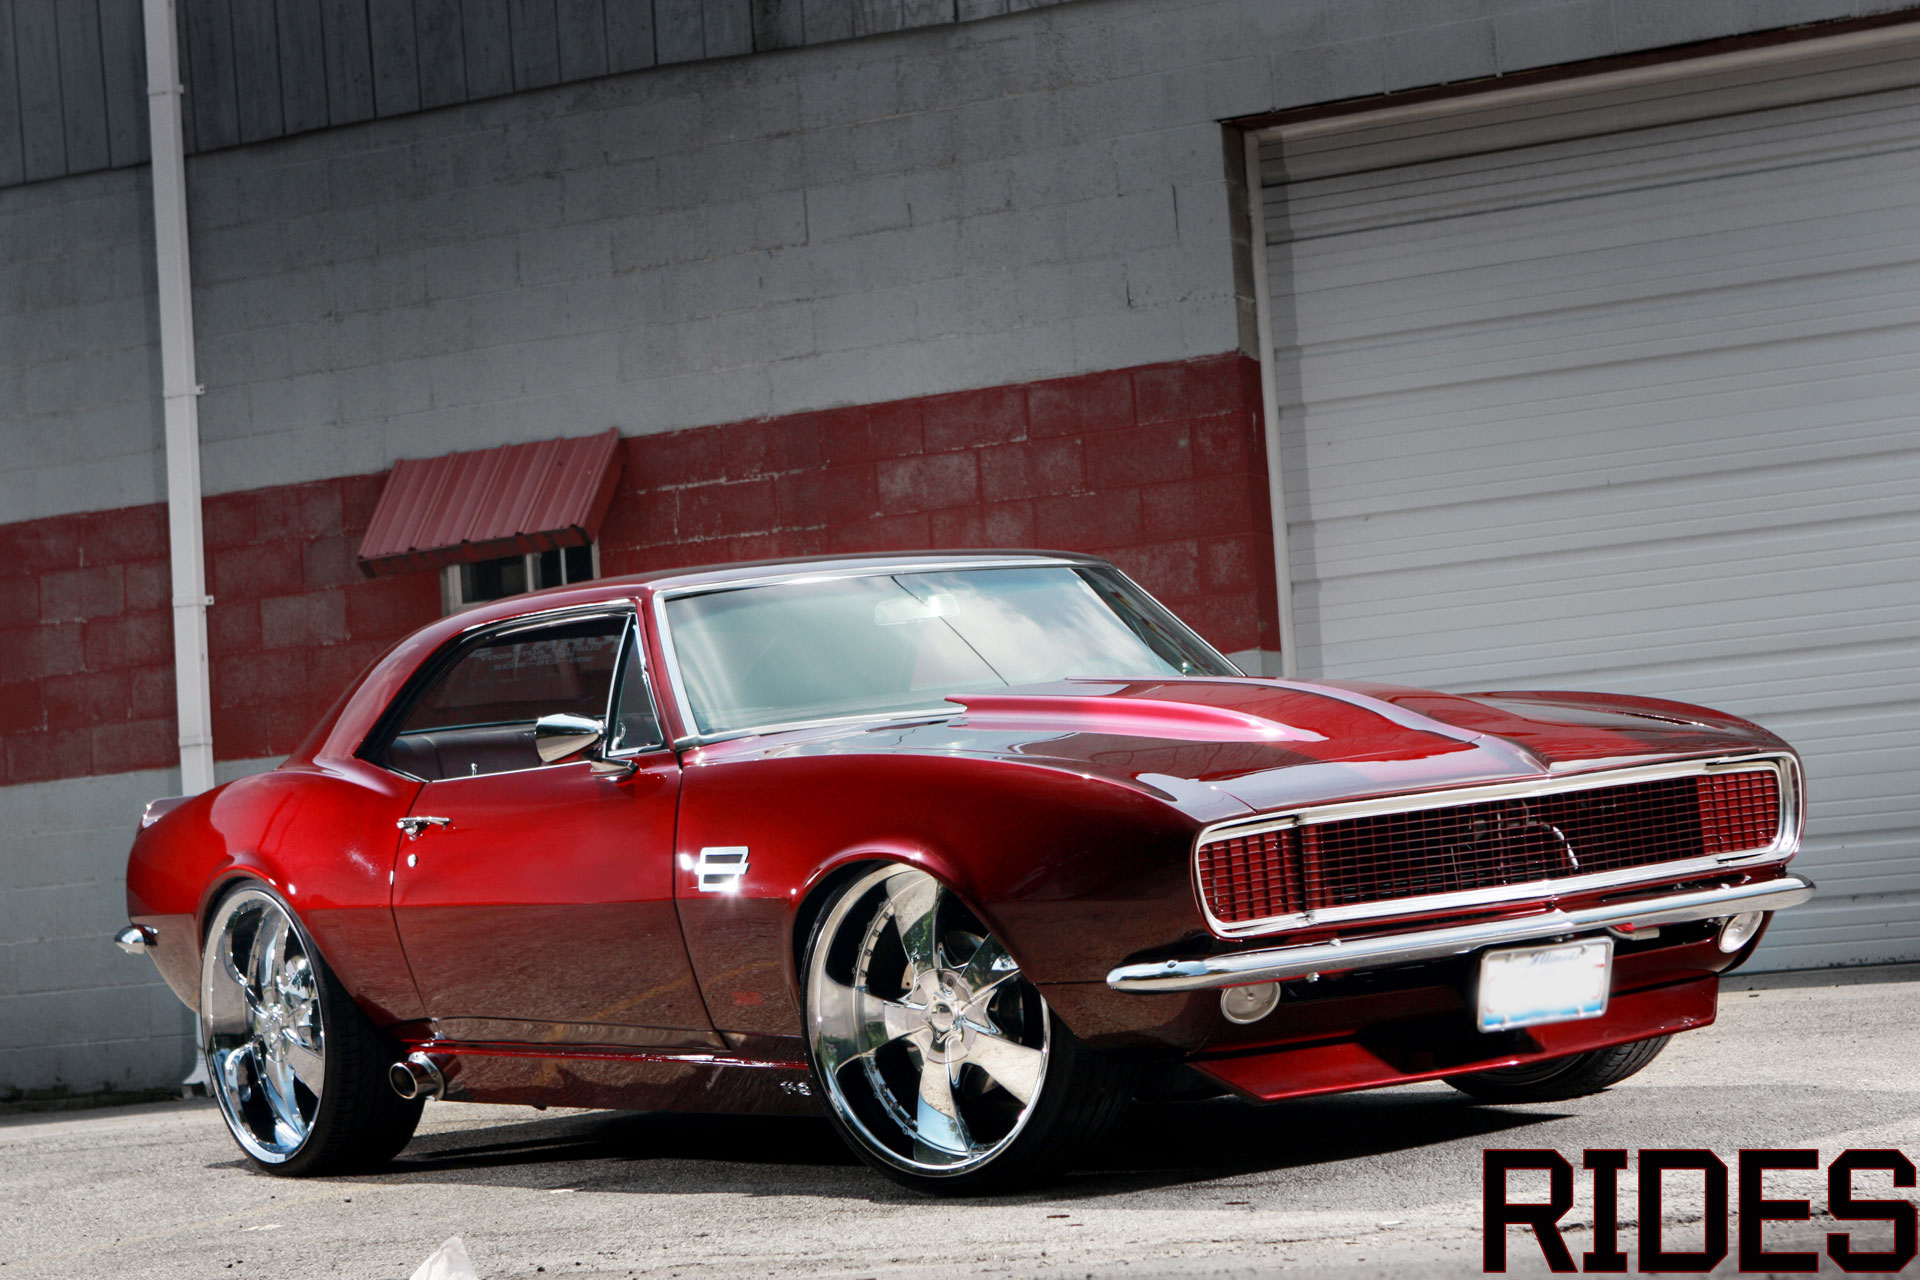 rides-cars-camaro-wallpaper-chevy-chevrolet